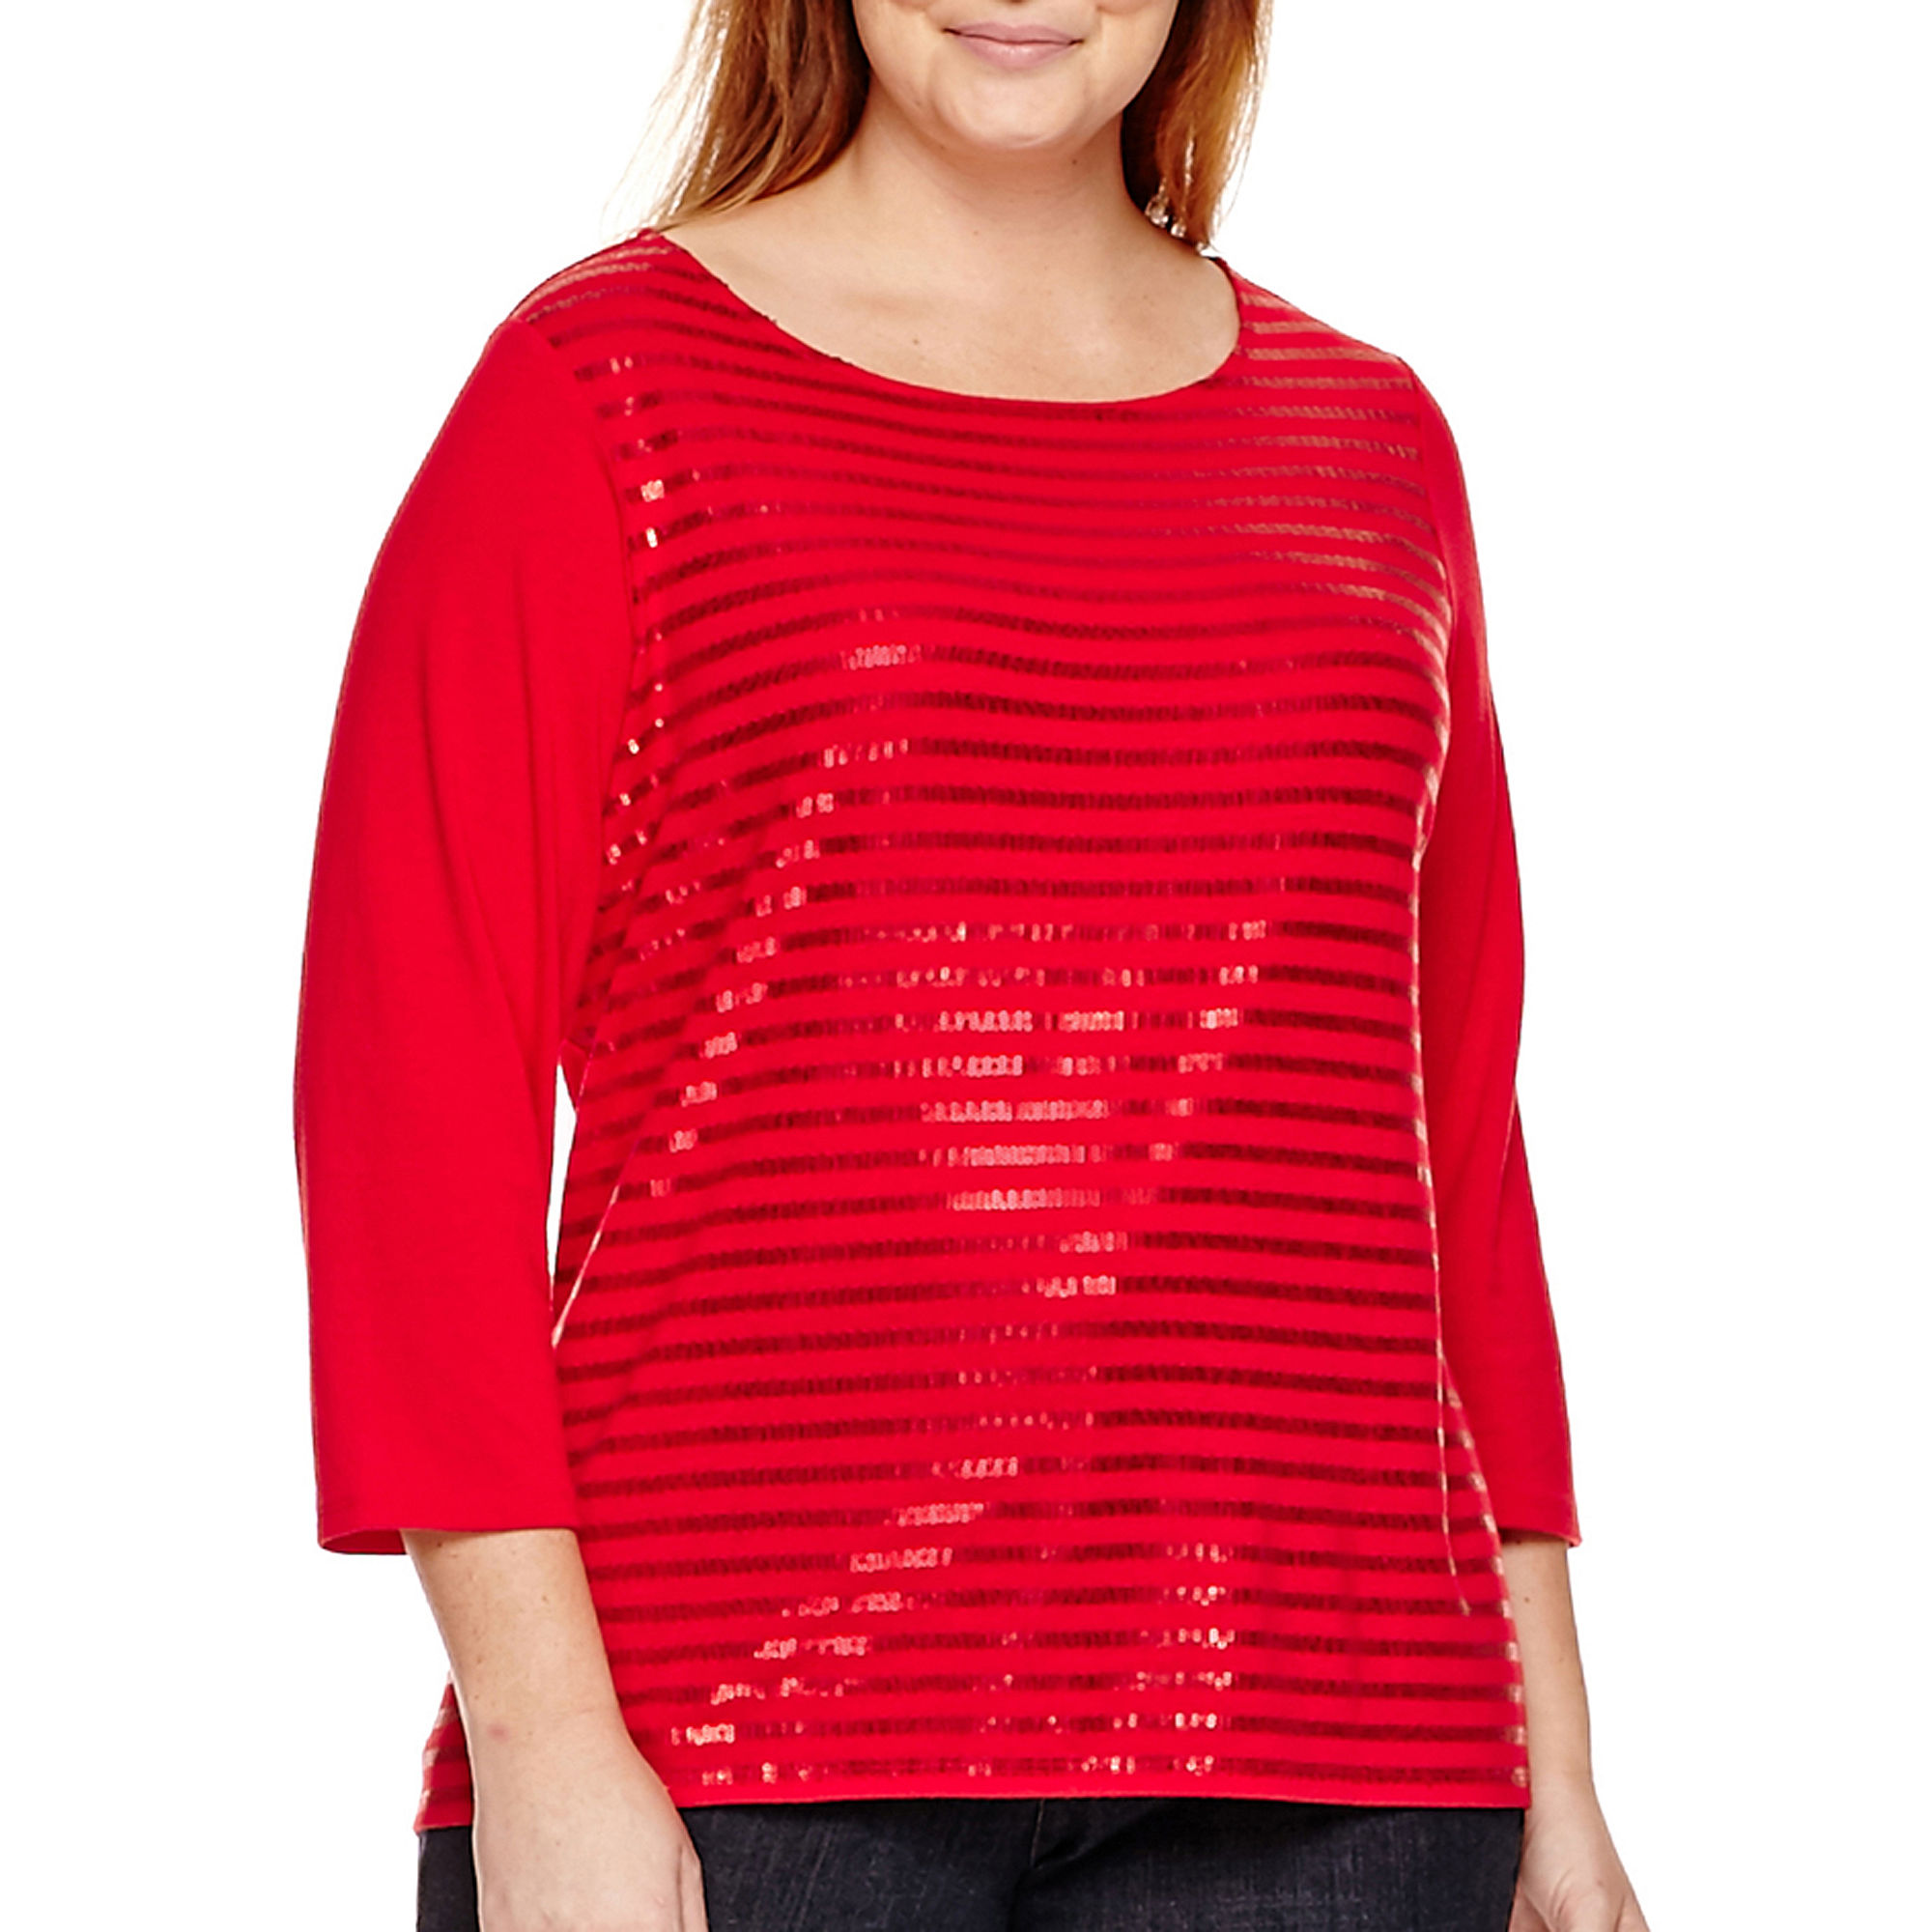 Jcpenney save at least 50 on these plussize deals for Liz claiborne v neck t shirts